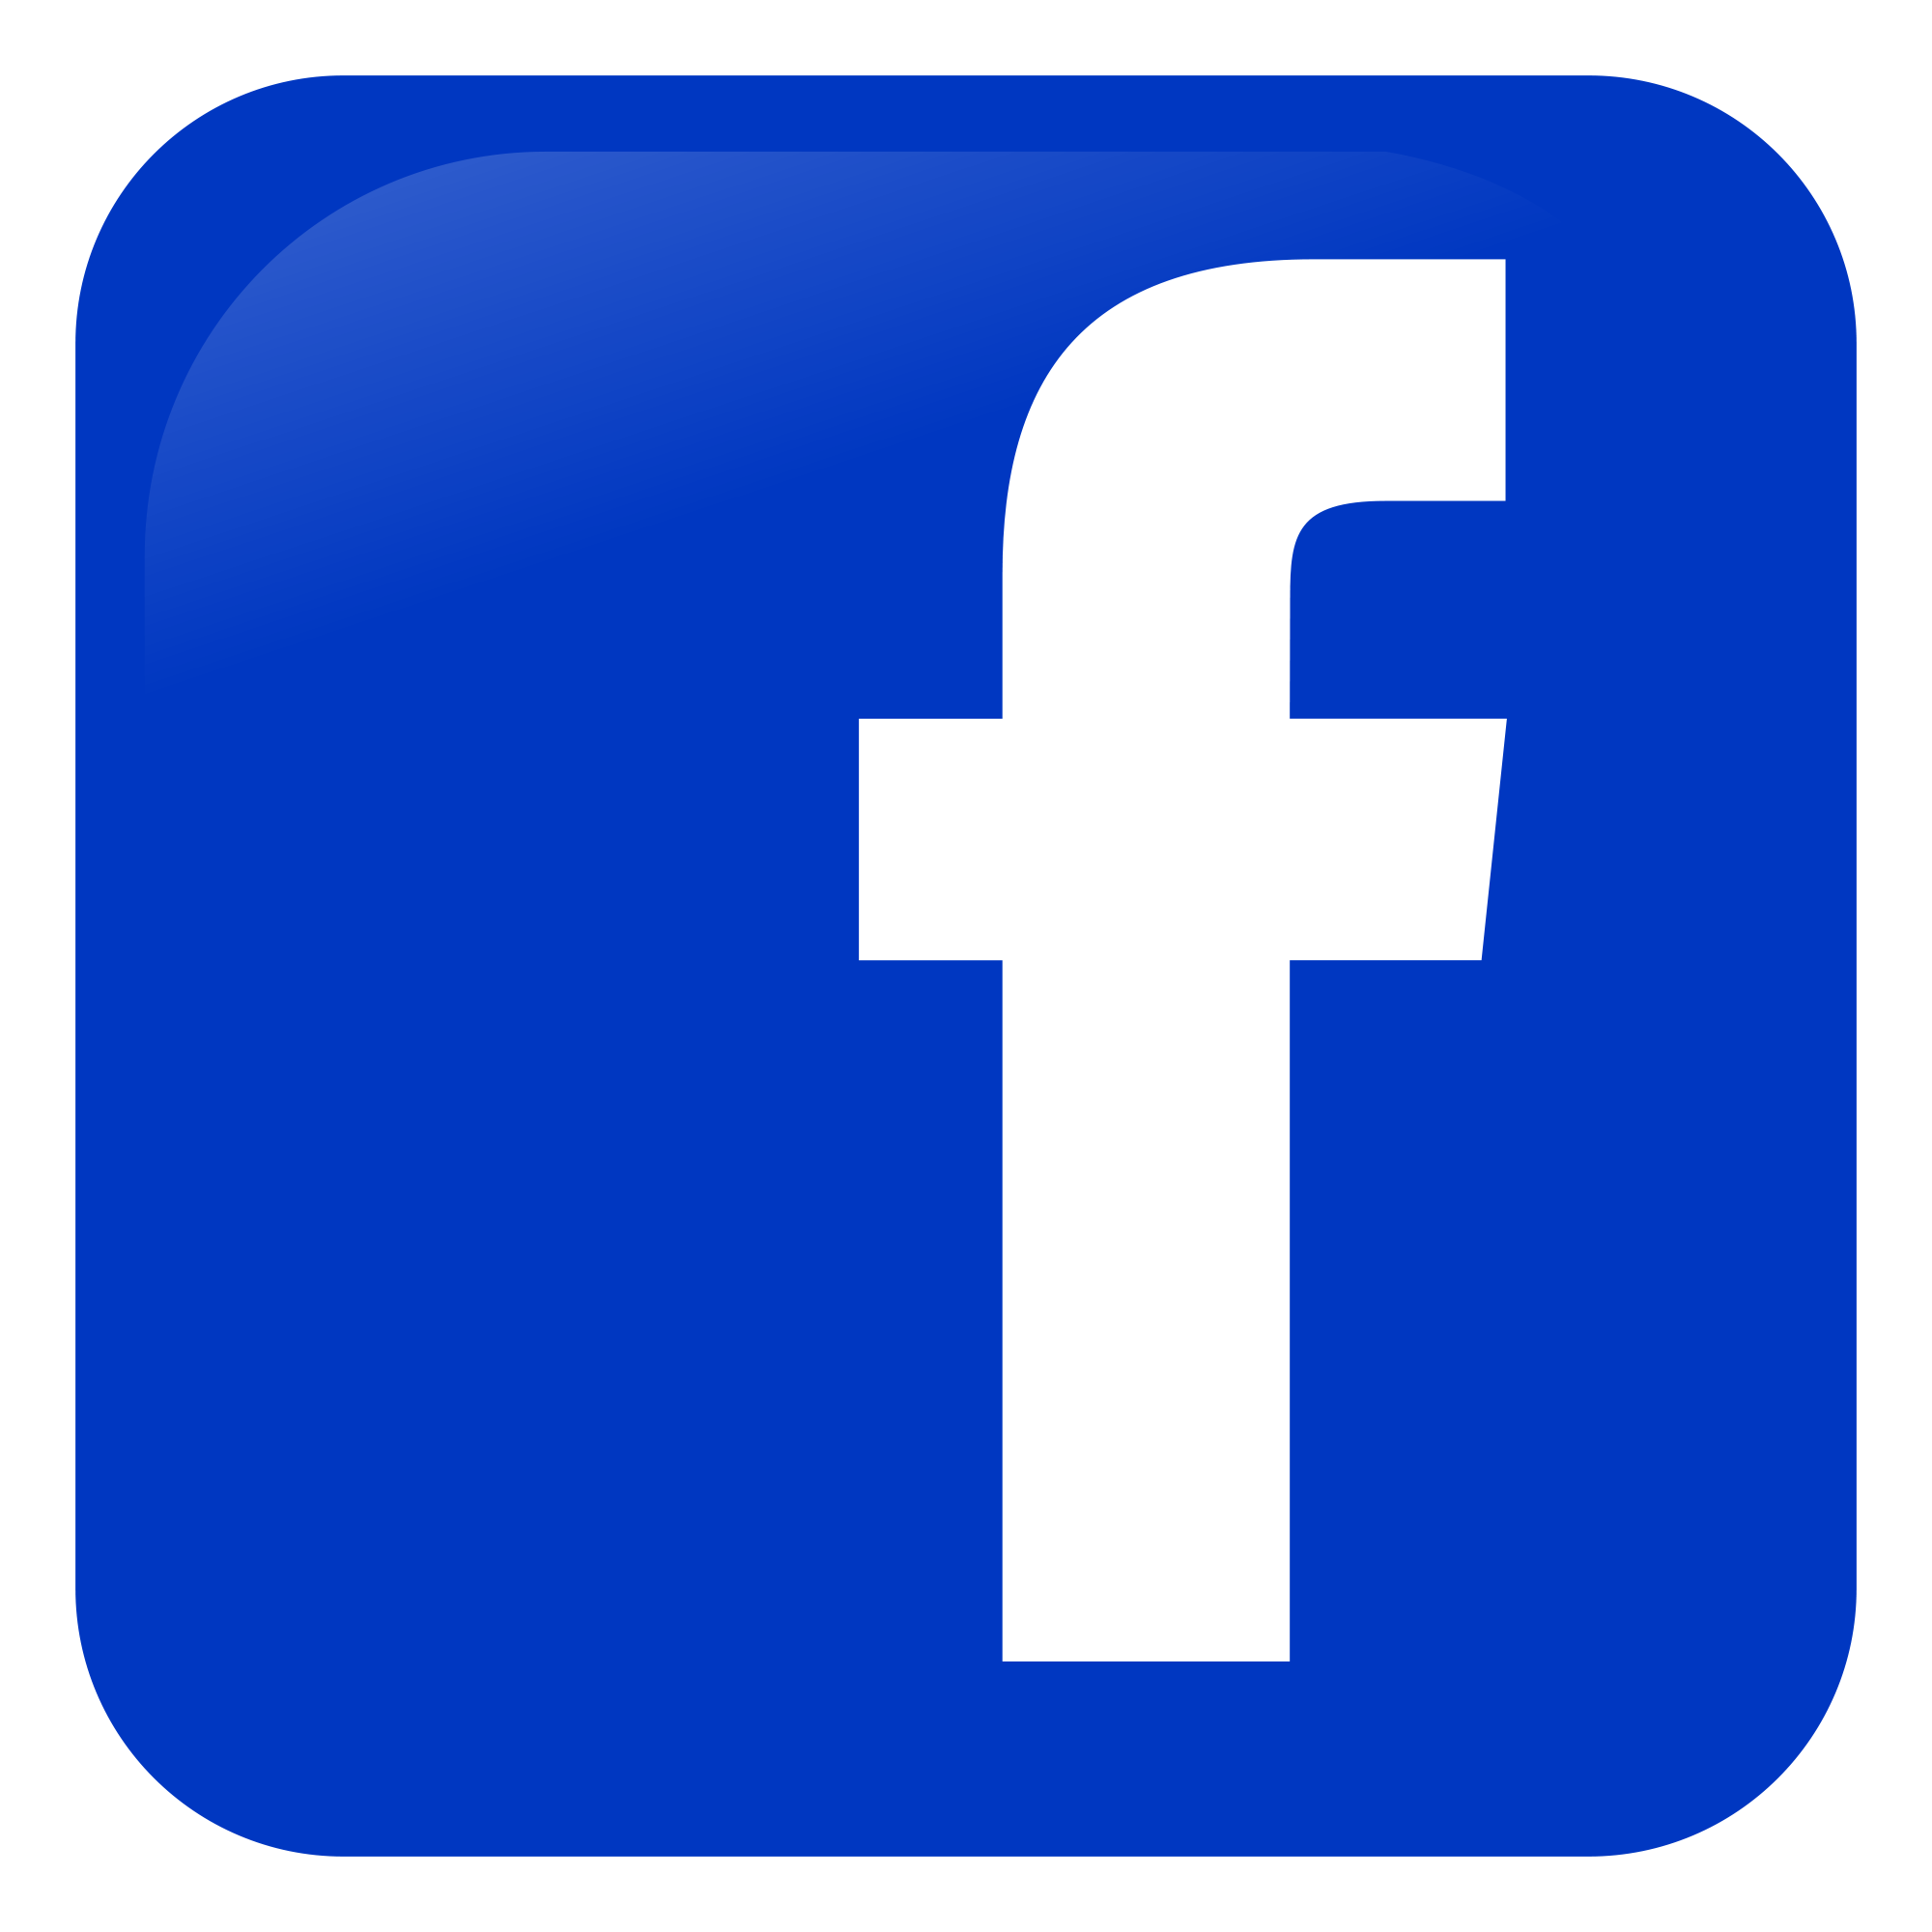 Facebook icon PNG.